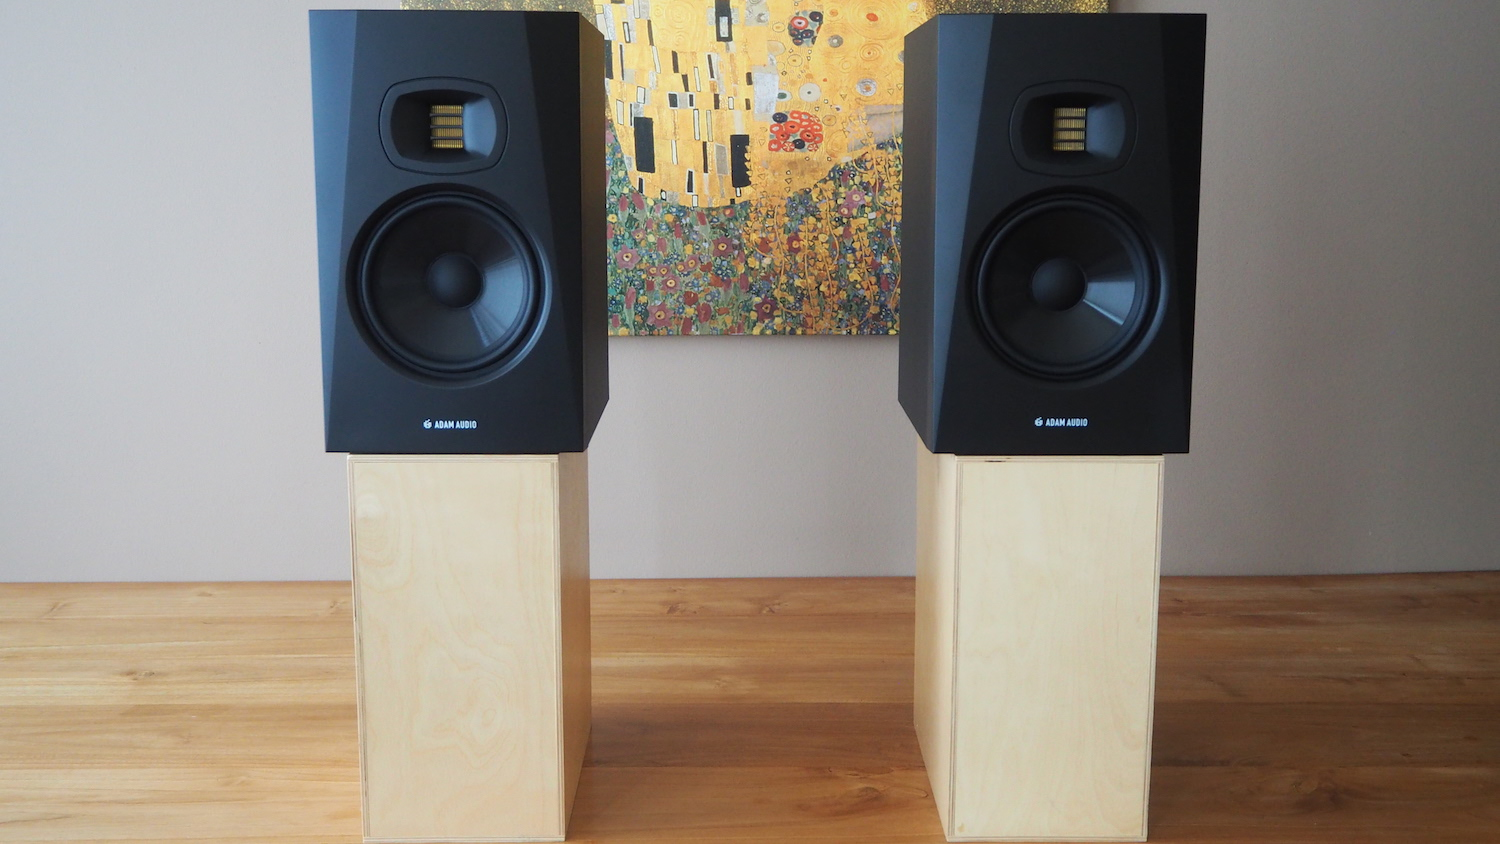 Review Adam Audio T7v Vs Ax7 Studio Monitors The Wong Janice Posted On December 17 2009 By Music Producer Cellist